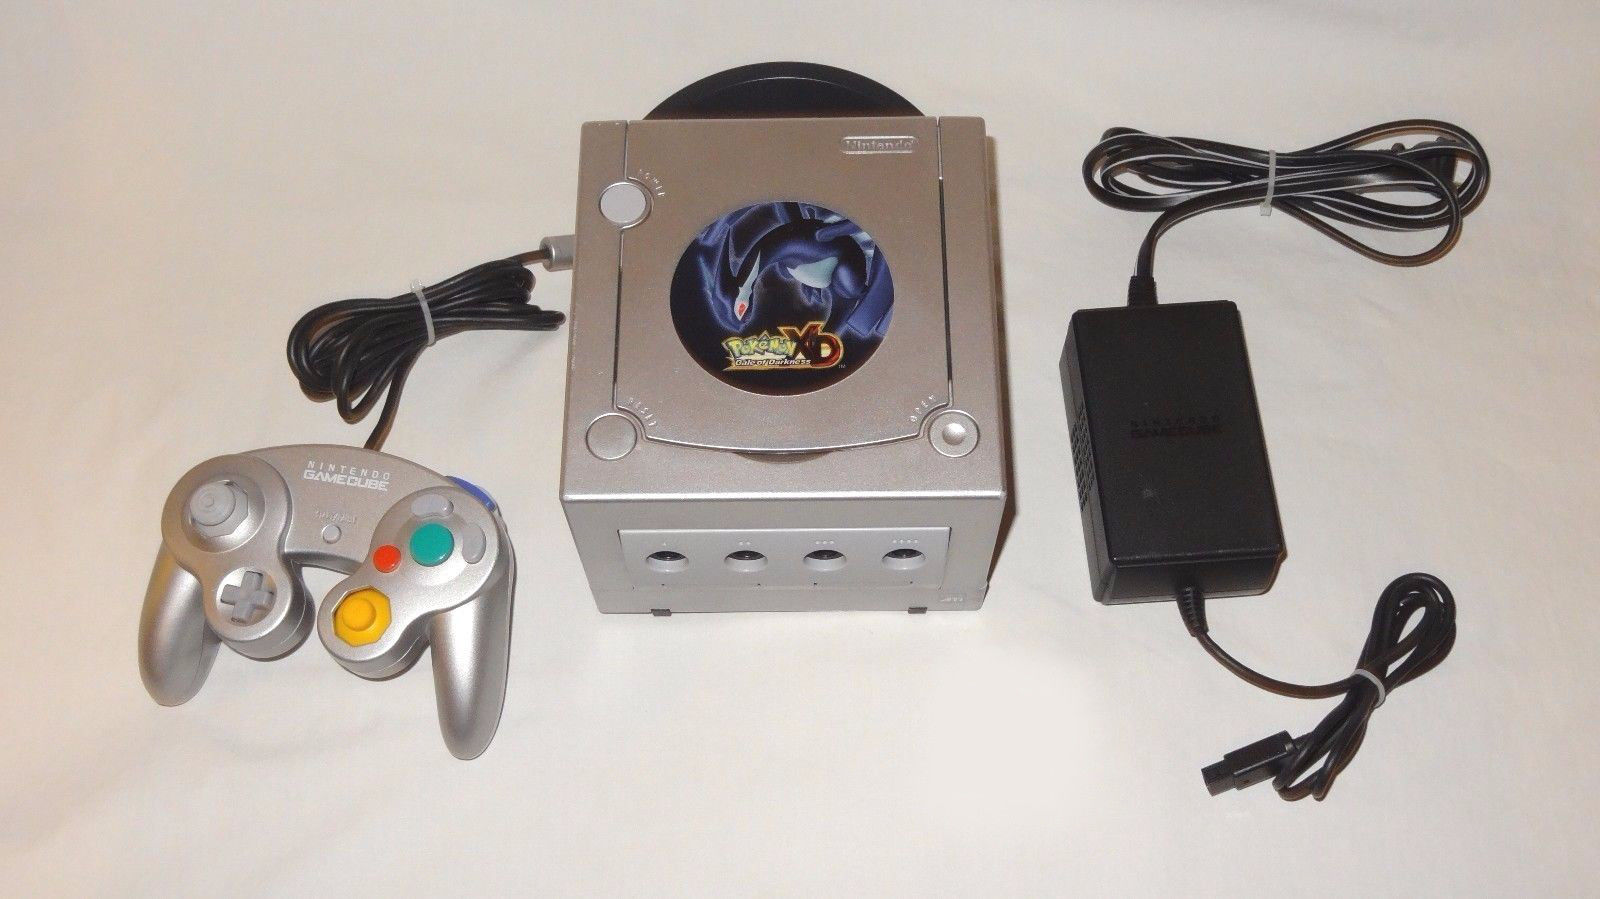 Nintendo gamecube pokemon xd limited edition gale of darkness console complete site title - Gamecube pokemon xd console ...